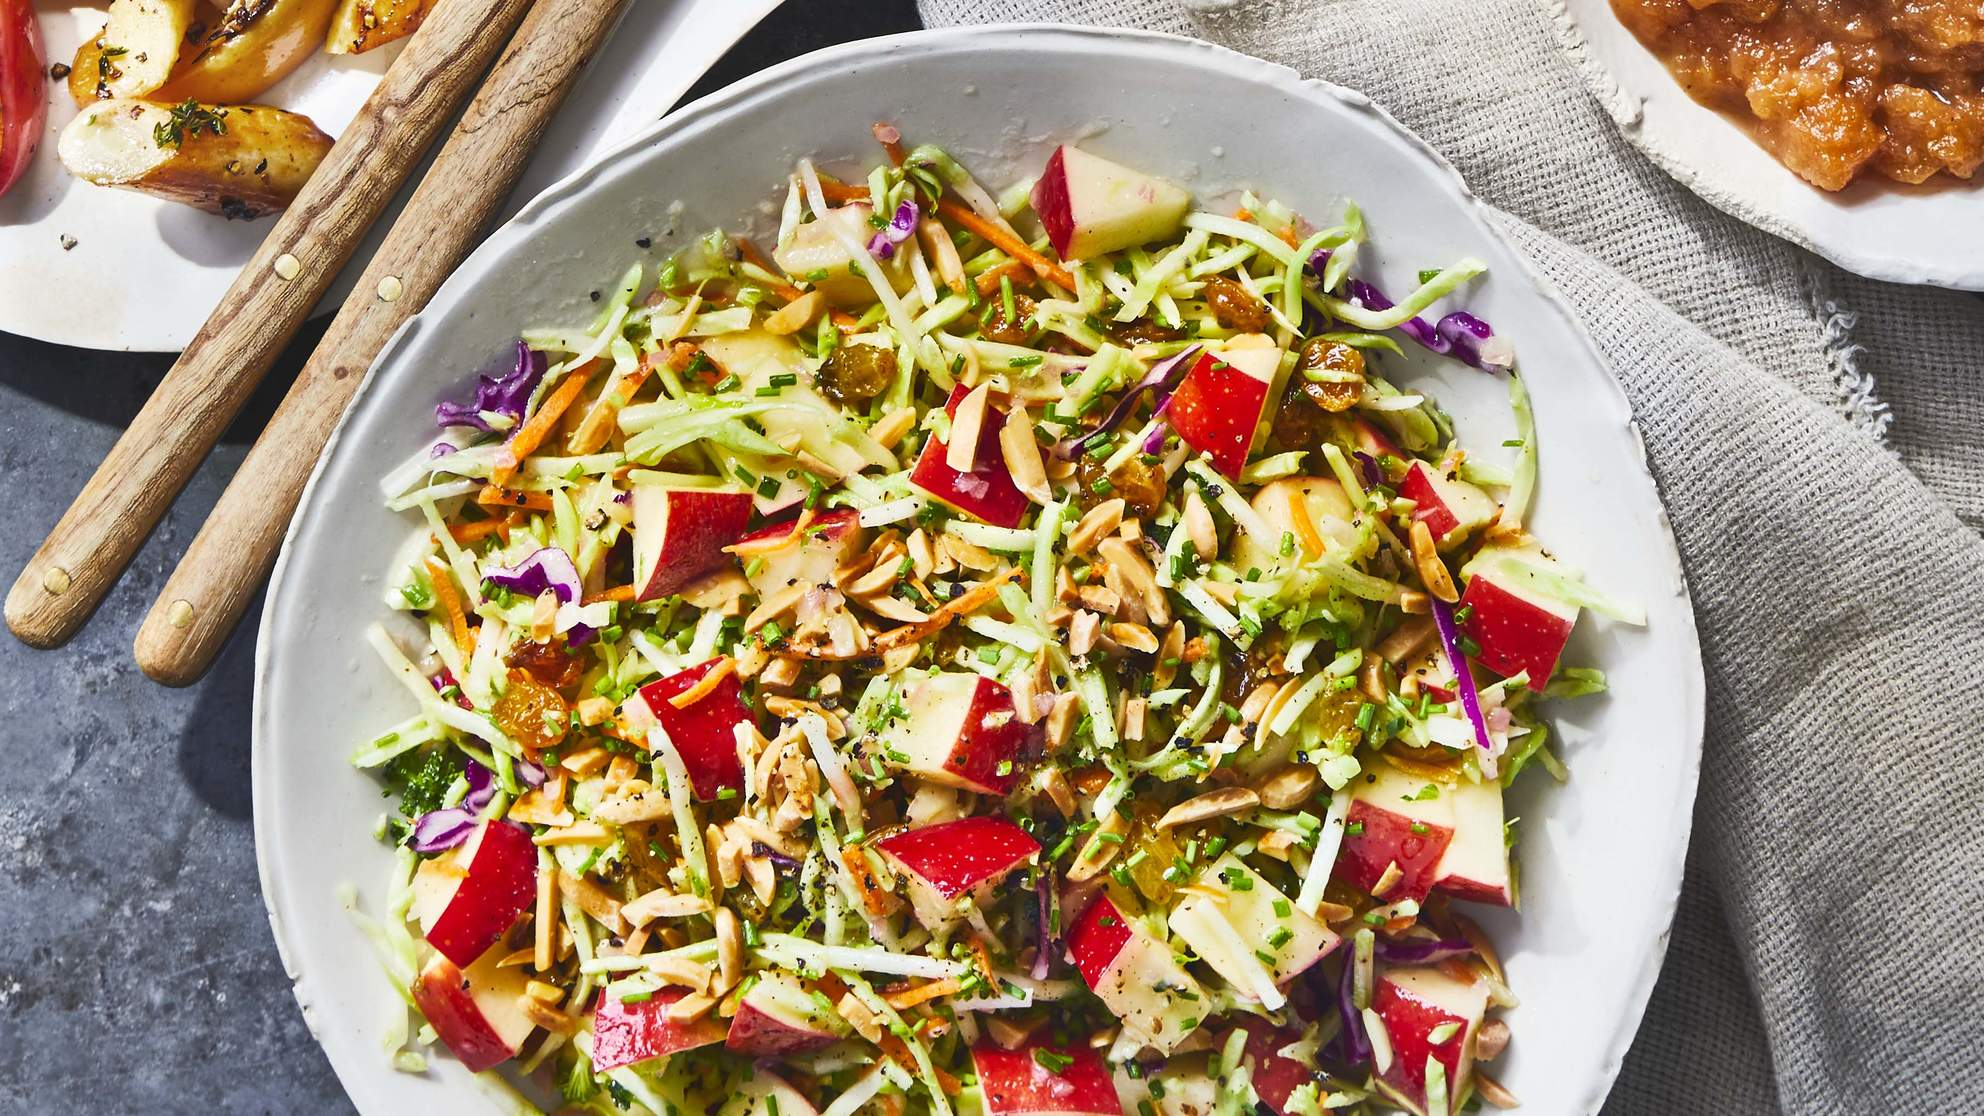 apple-salad-recipes-health-mag-october-2019